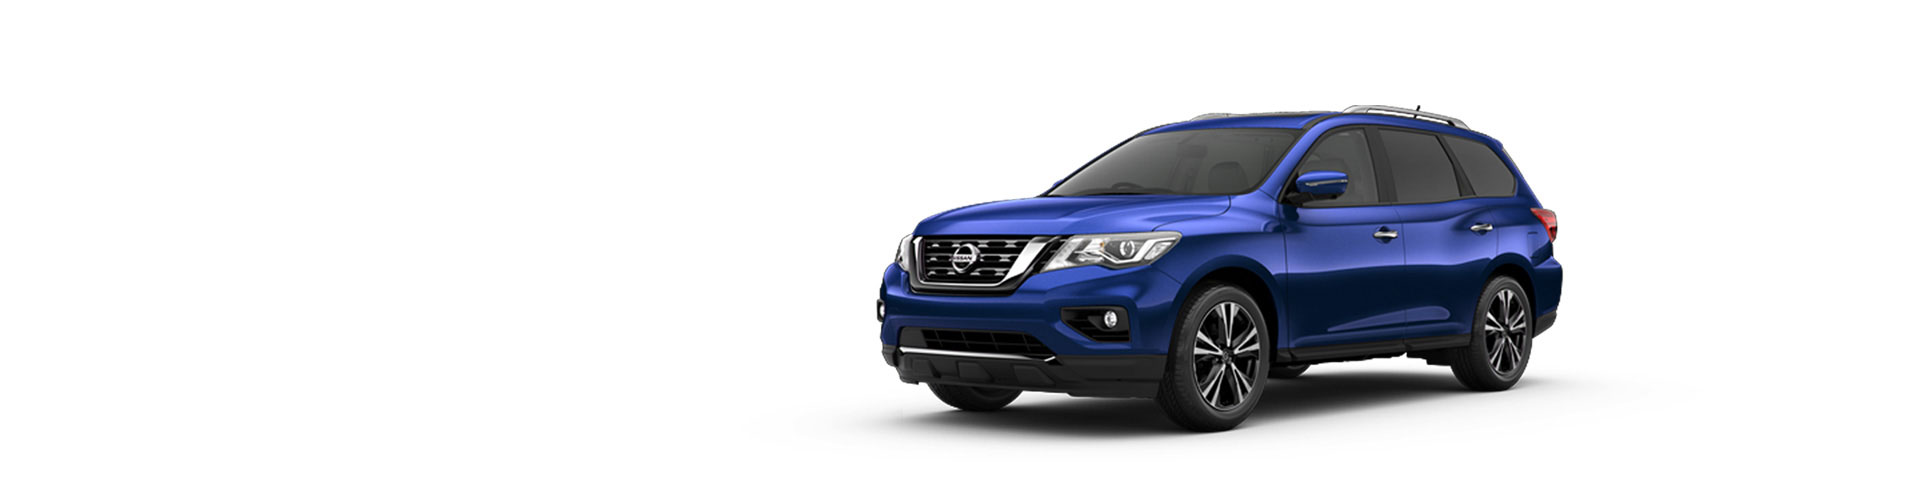 "<div class=""top-left""> <h1 class=""text-white"">NISSAN PATHFINDER </h1><h3 class=""text-white"">FAMILY ADVENTURES REDEFINED  </h3> <div class=""button-container""><a href=/specials>Find out more</a></div> </div>"